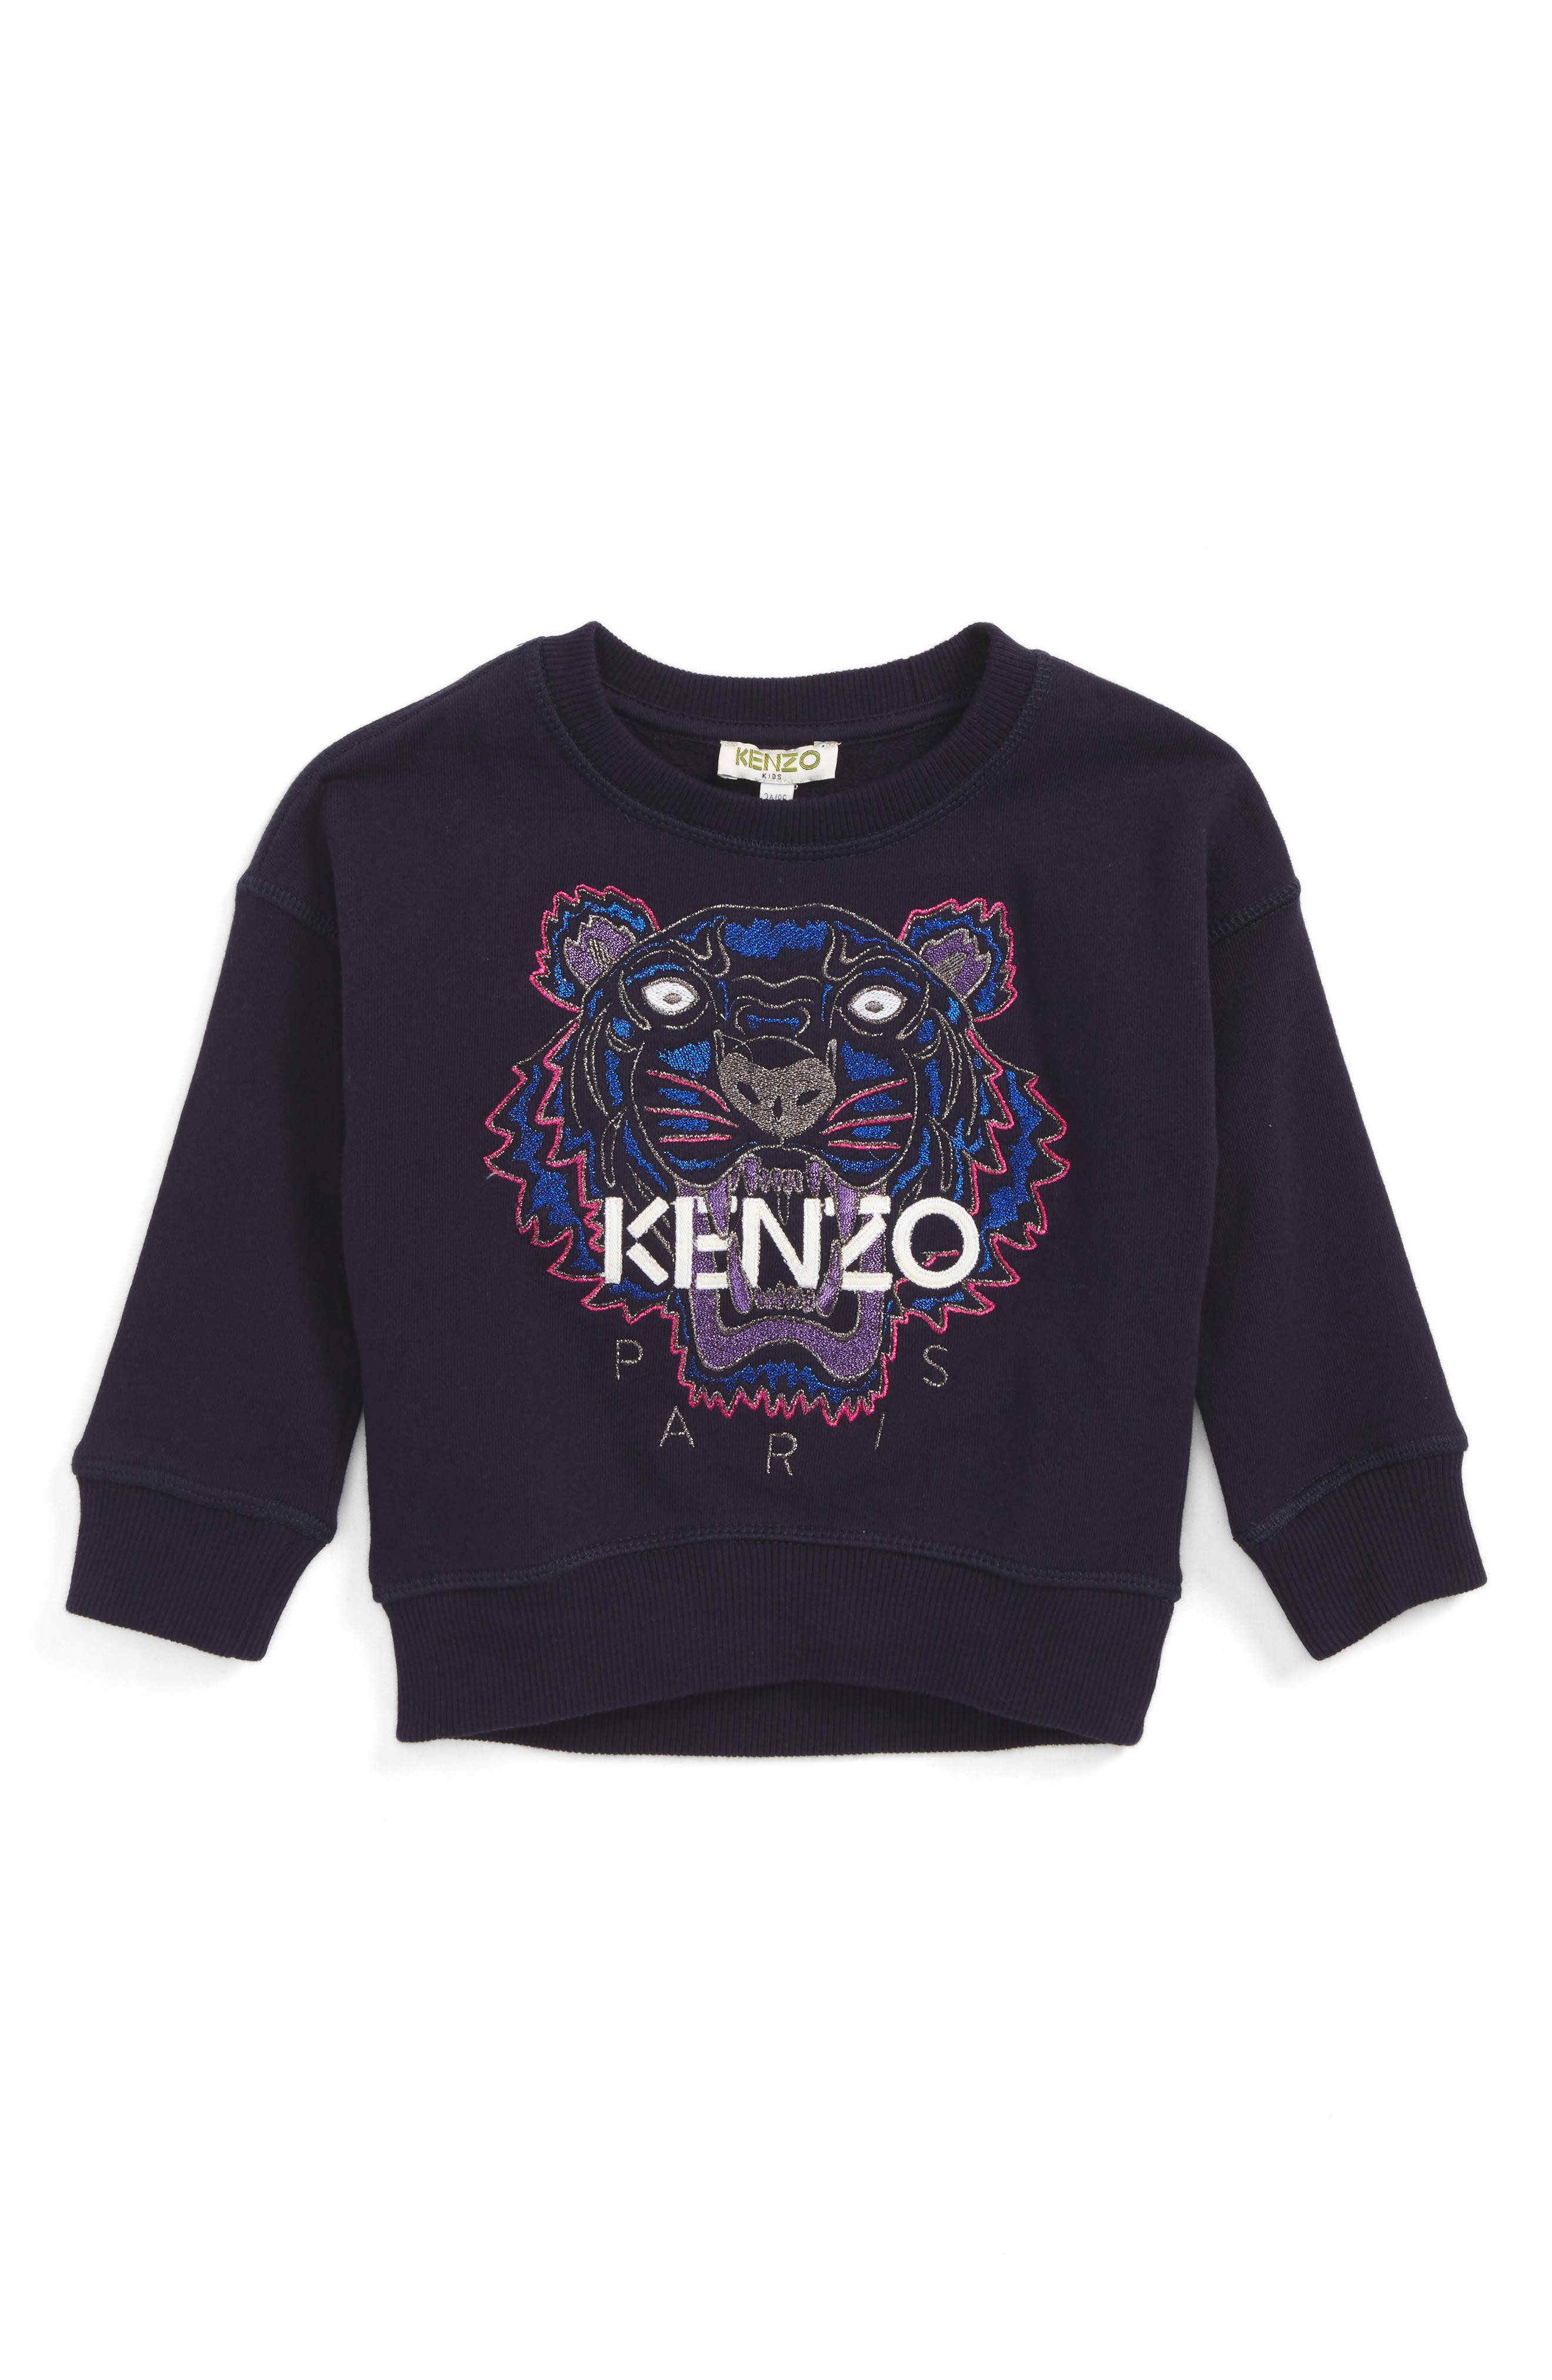 KENZO Embroidered Tiger Logo Sweatshirt (Toddler Girls, Little Girls & Big Girls)